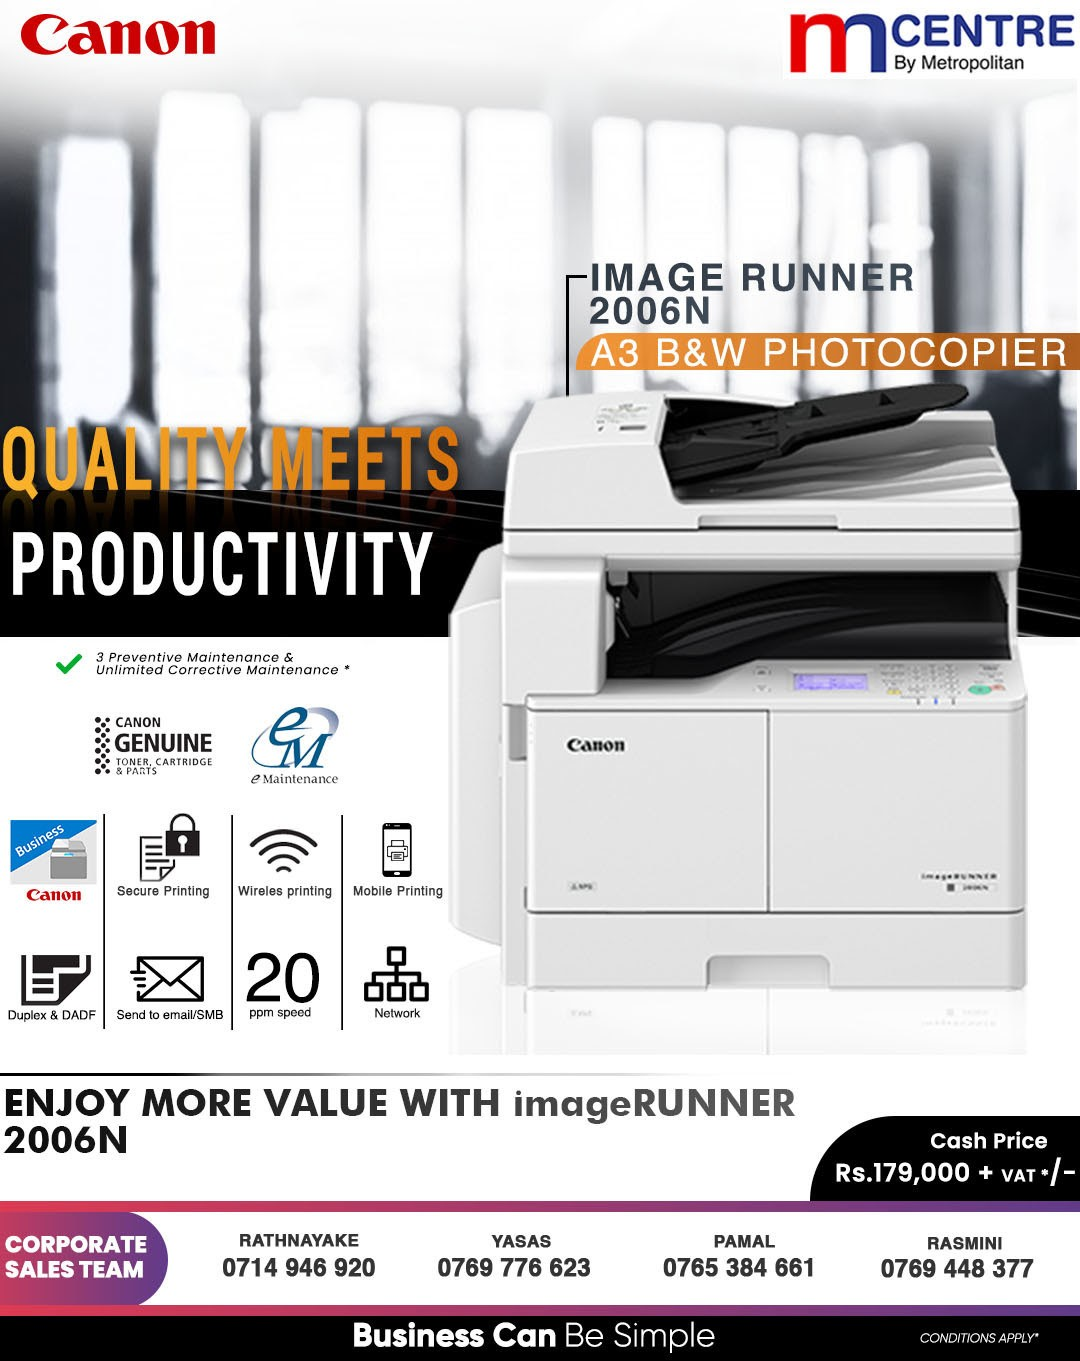 Enjoy More Value with ImageRUNNER 2006N B&W A3 Photocopier